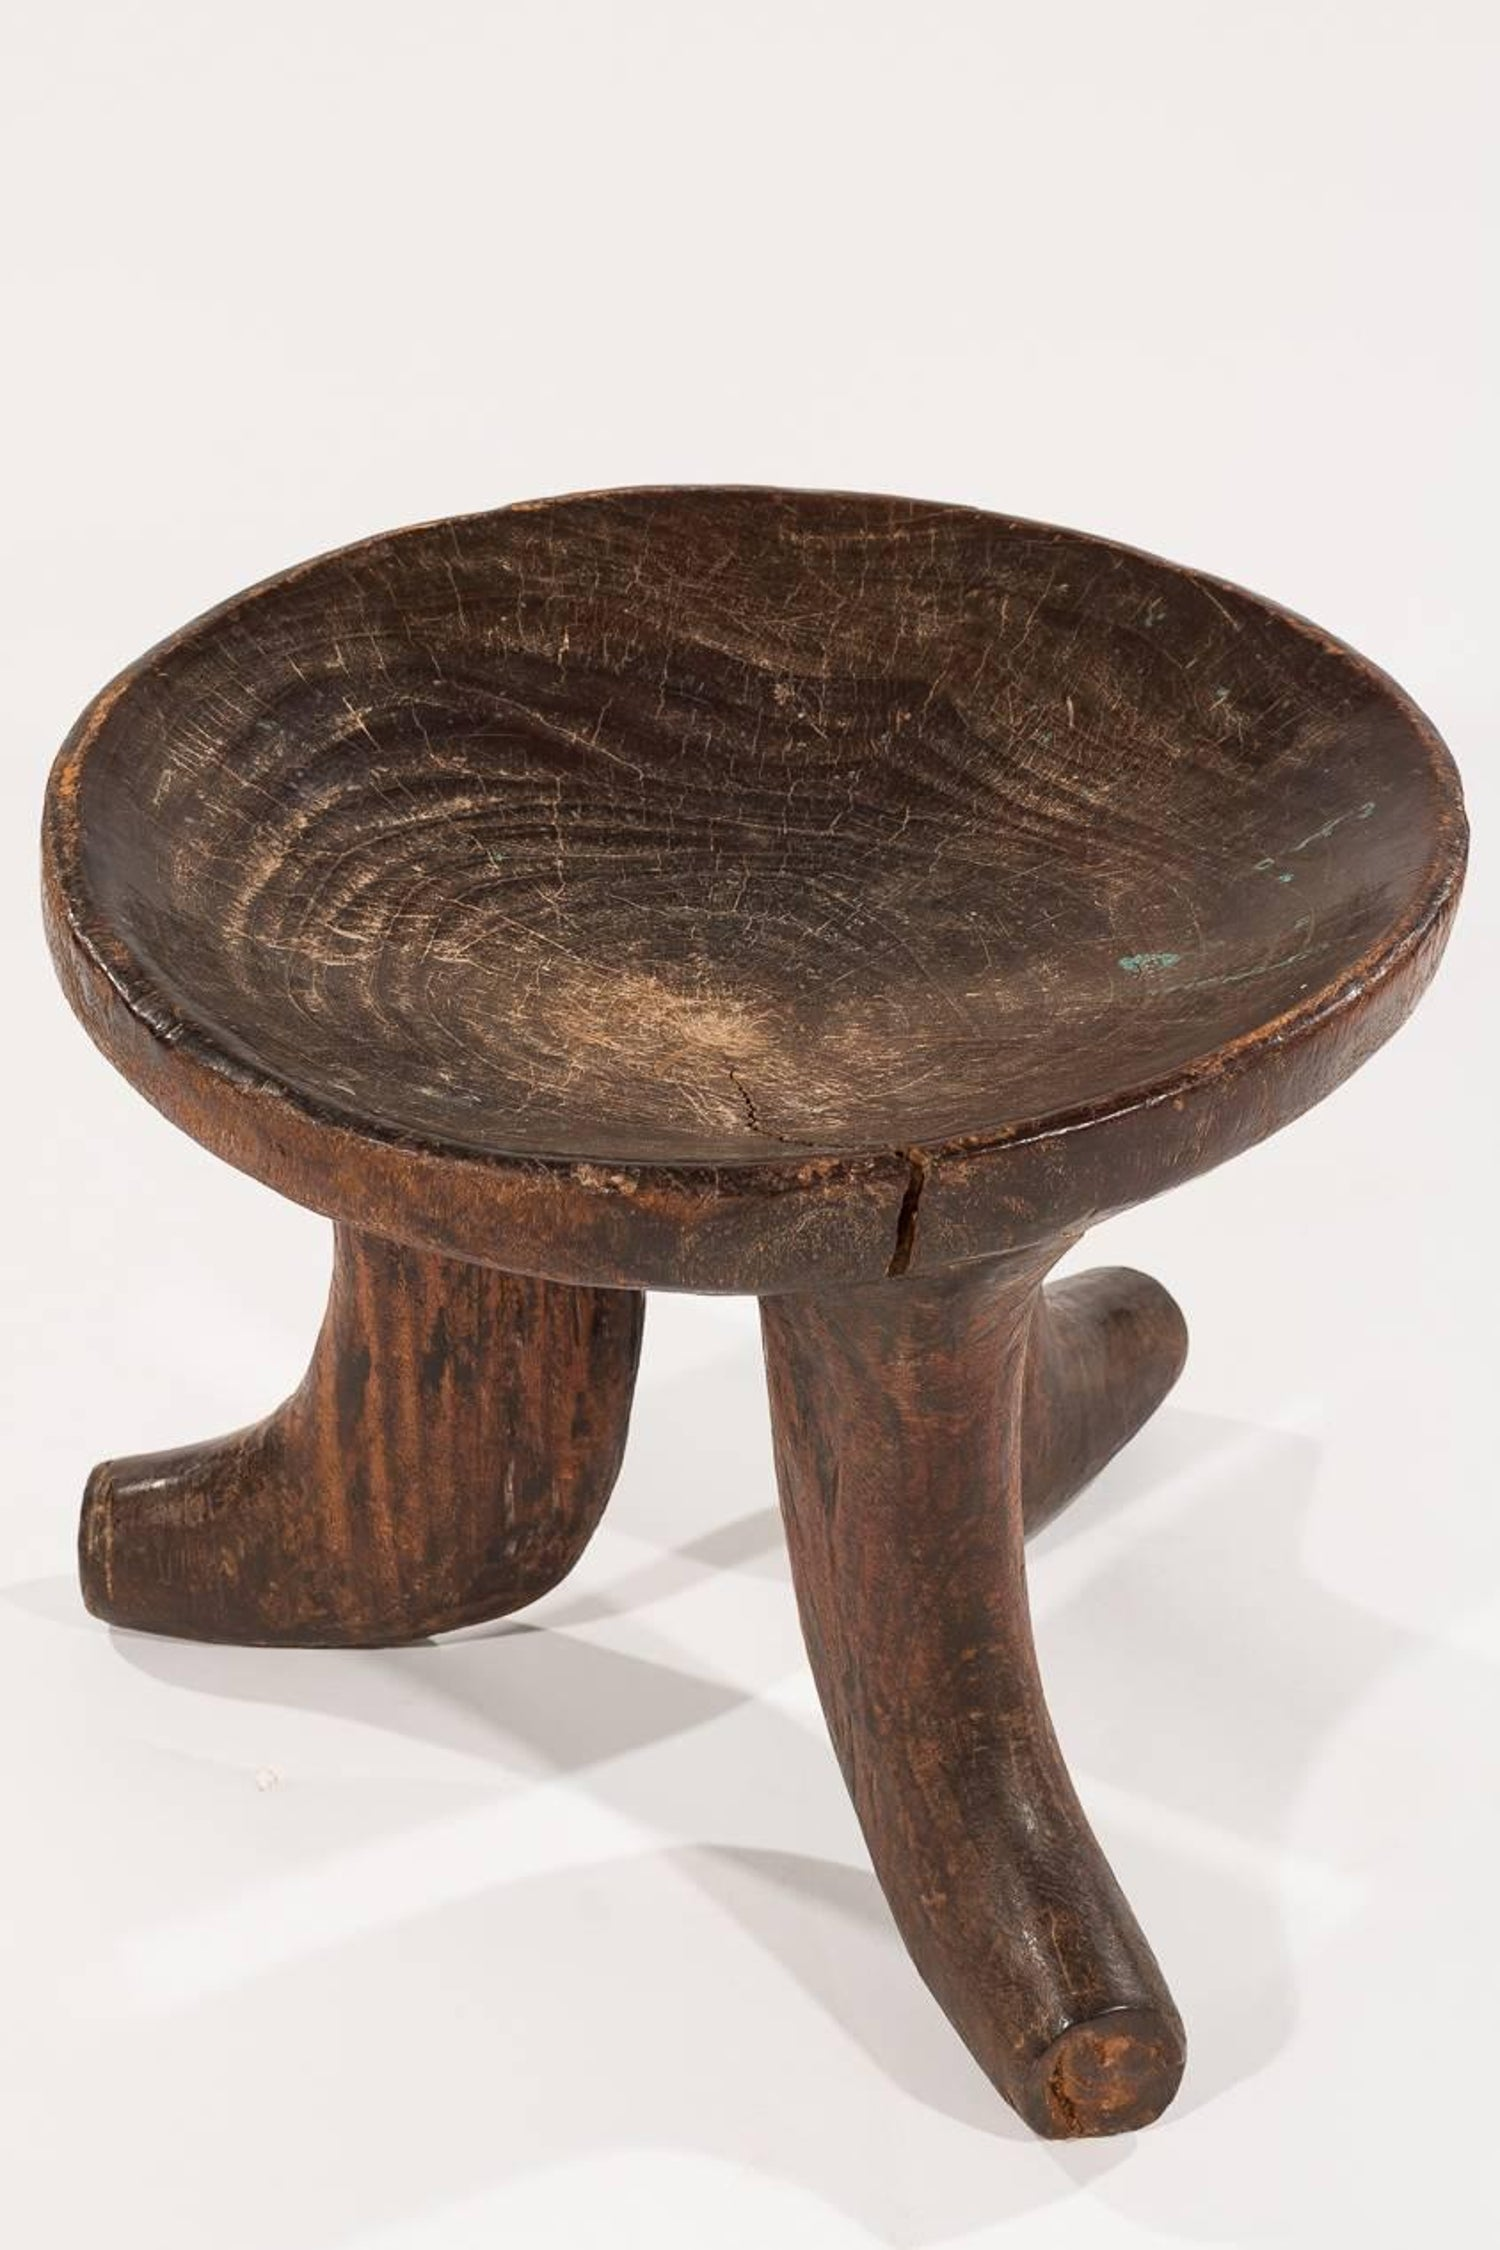 Astonishing Colonial Era African Stool From Ethiopia Gmtry Best Dining Table And Chair Ideas Images Gmtryco